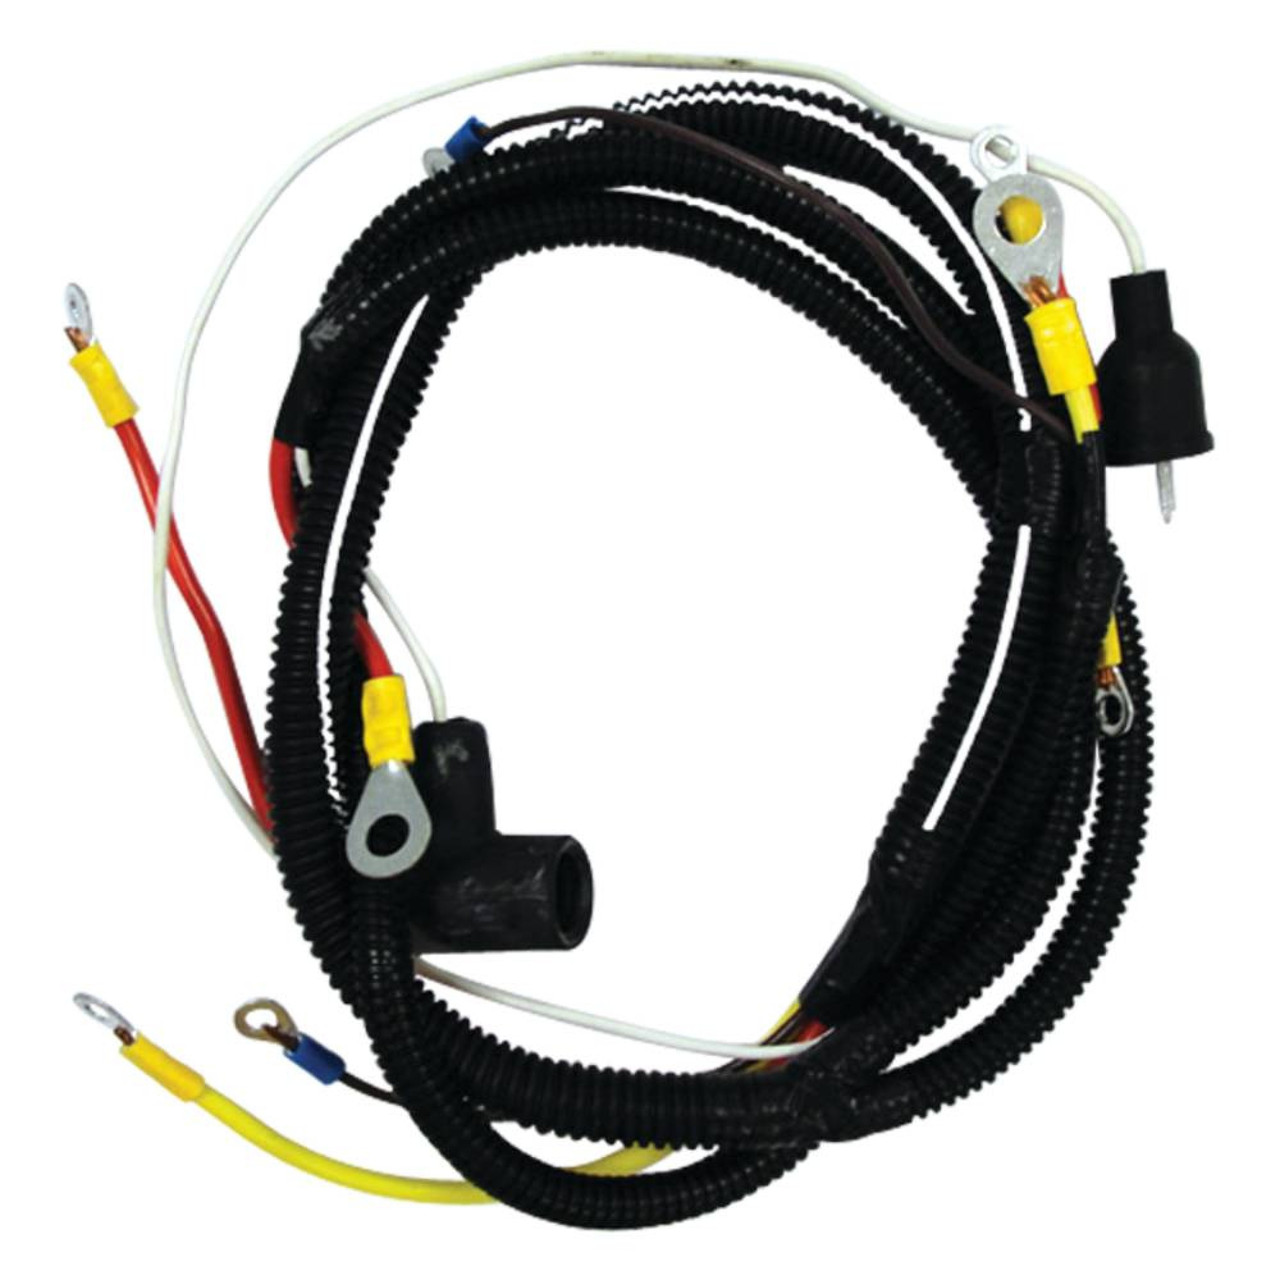 New Wiring Harness For Ford New Holland 2N, 8N, 9N on